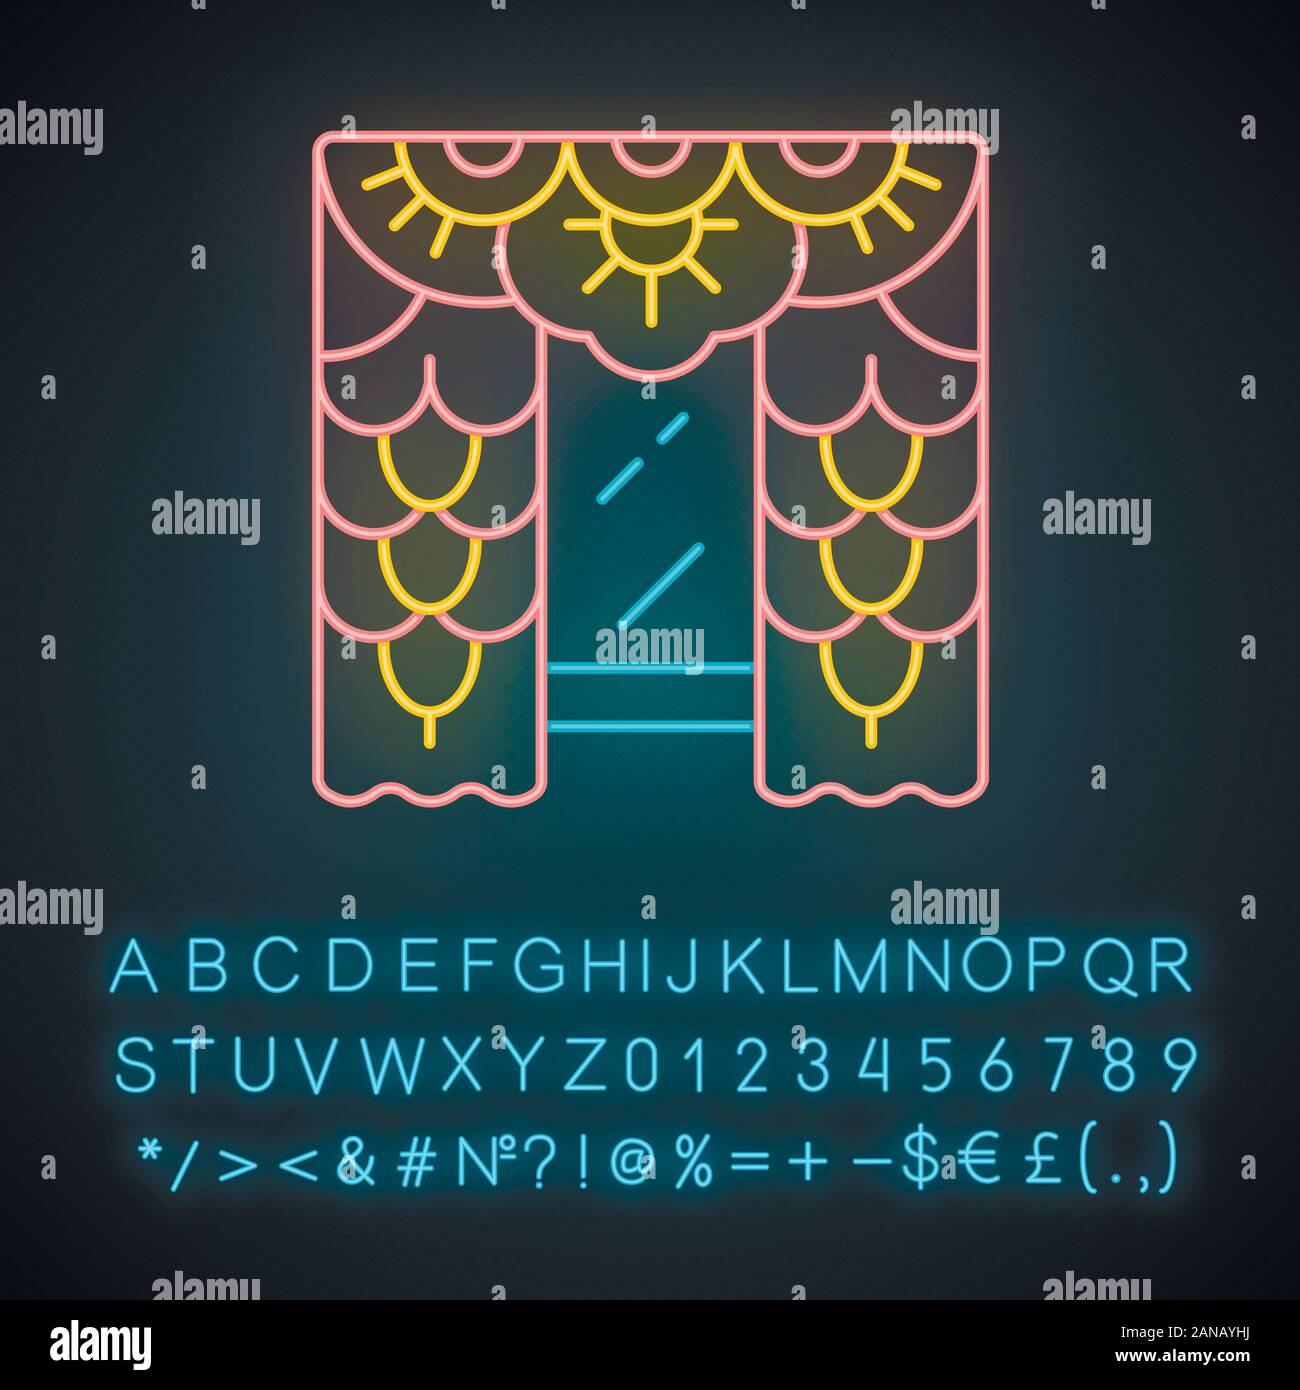 Lace Curtains Neon Light Icon House Interior Design Home Window Treatments Vintage Floral Curtains Blinds Drapes Glowing Sign With Alphabet Num Stock Vector Image Art Alamy